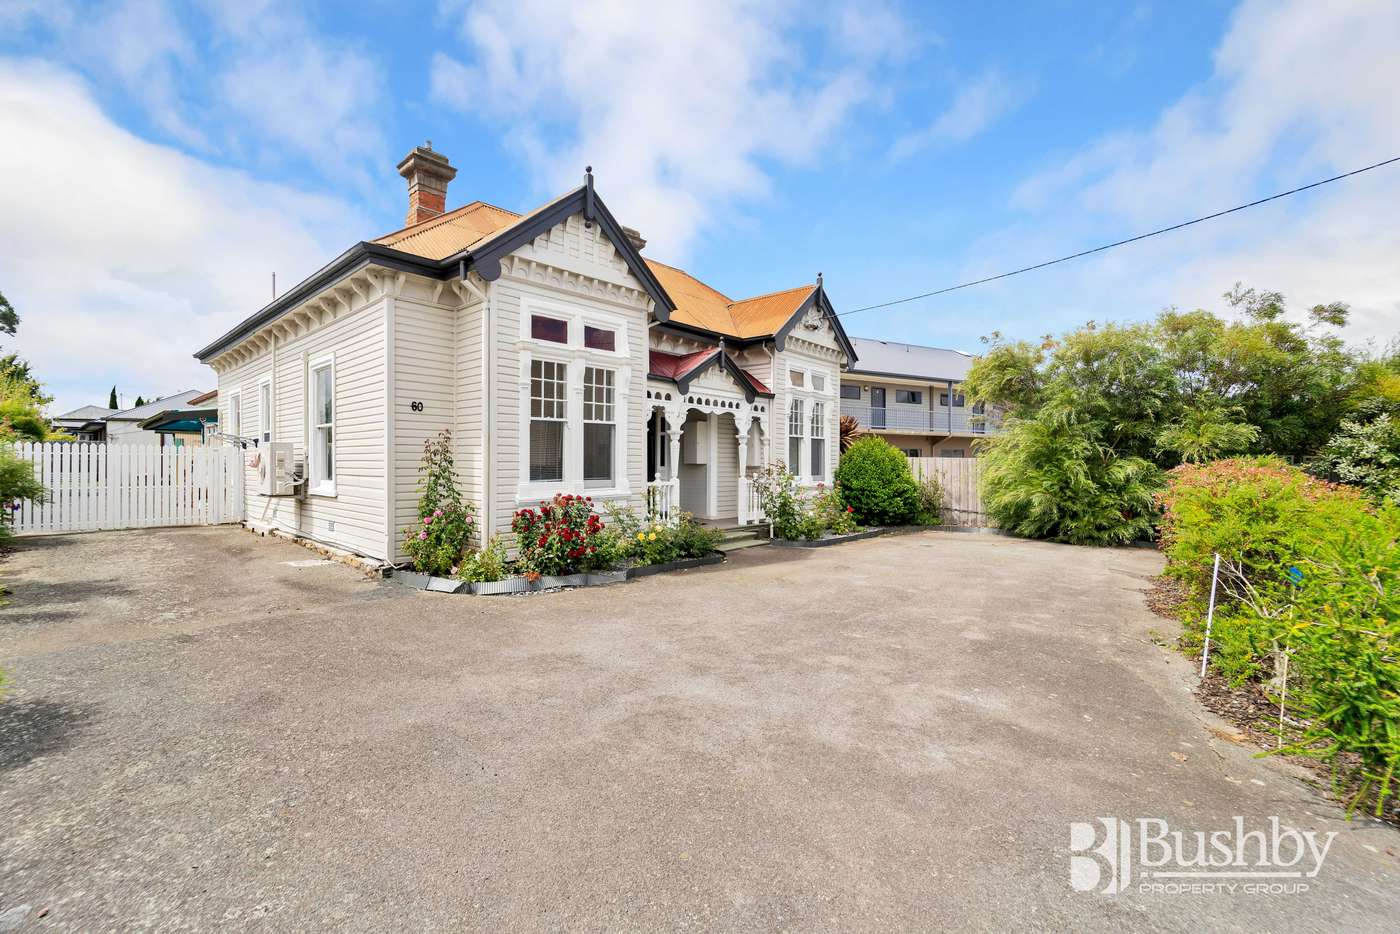 Main view of Homely house listing, 1/60 Invermay Road, Invermay TAS 7248